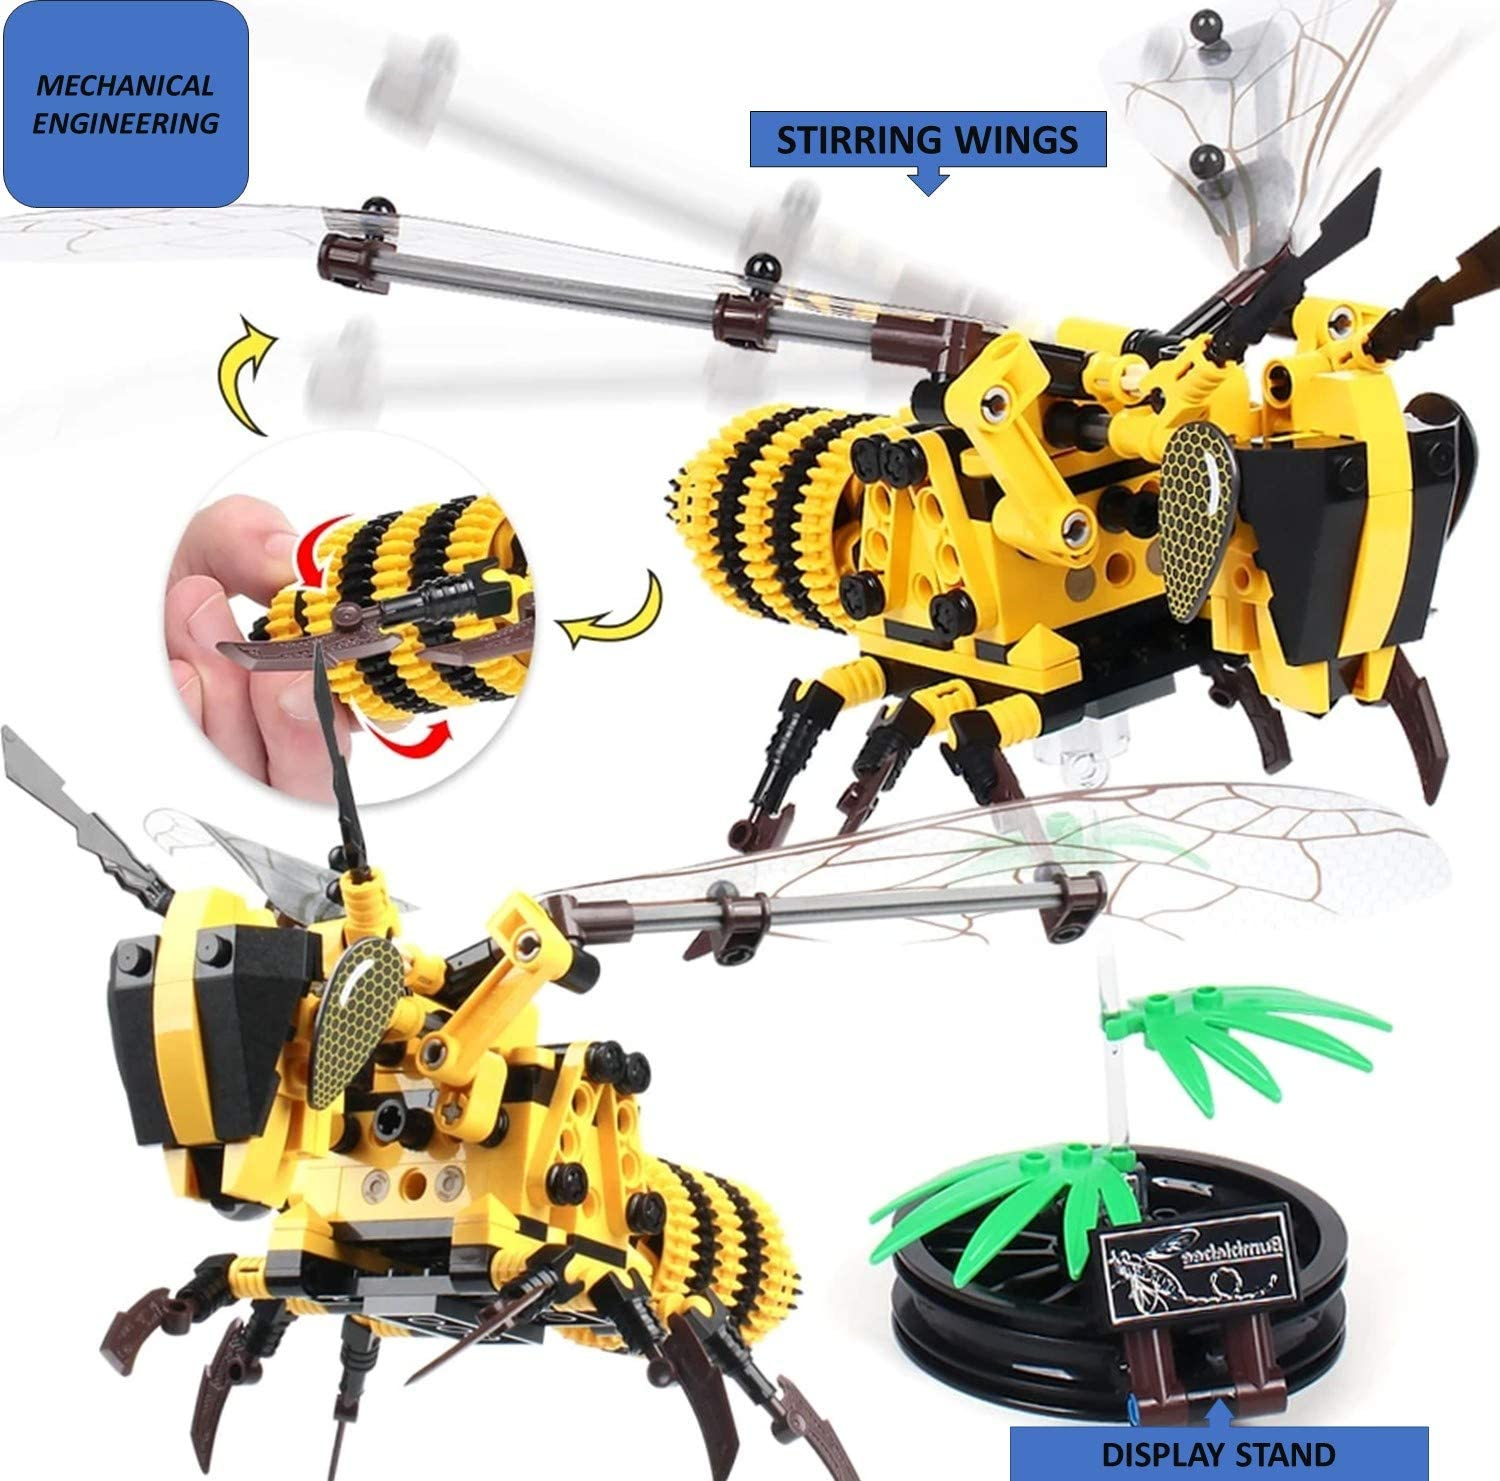 Jigamix STEM Building Toys for 6 Year Old Boys 236 Pcs Technical Honeybee DIY Building Blocks Educational Kit Stem Projects for Kids Ages 5 6 7 8 9 10 11 12